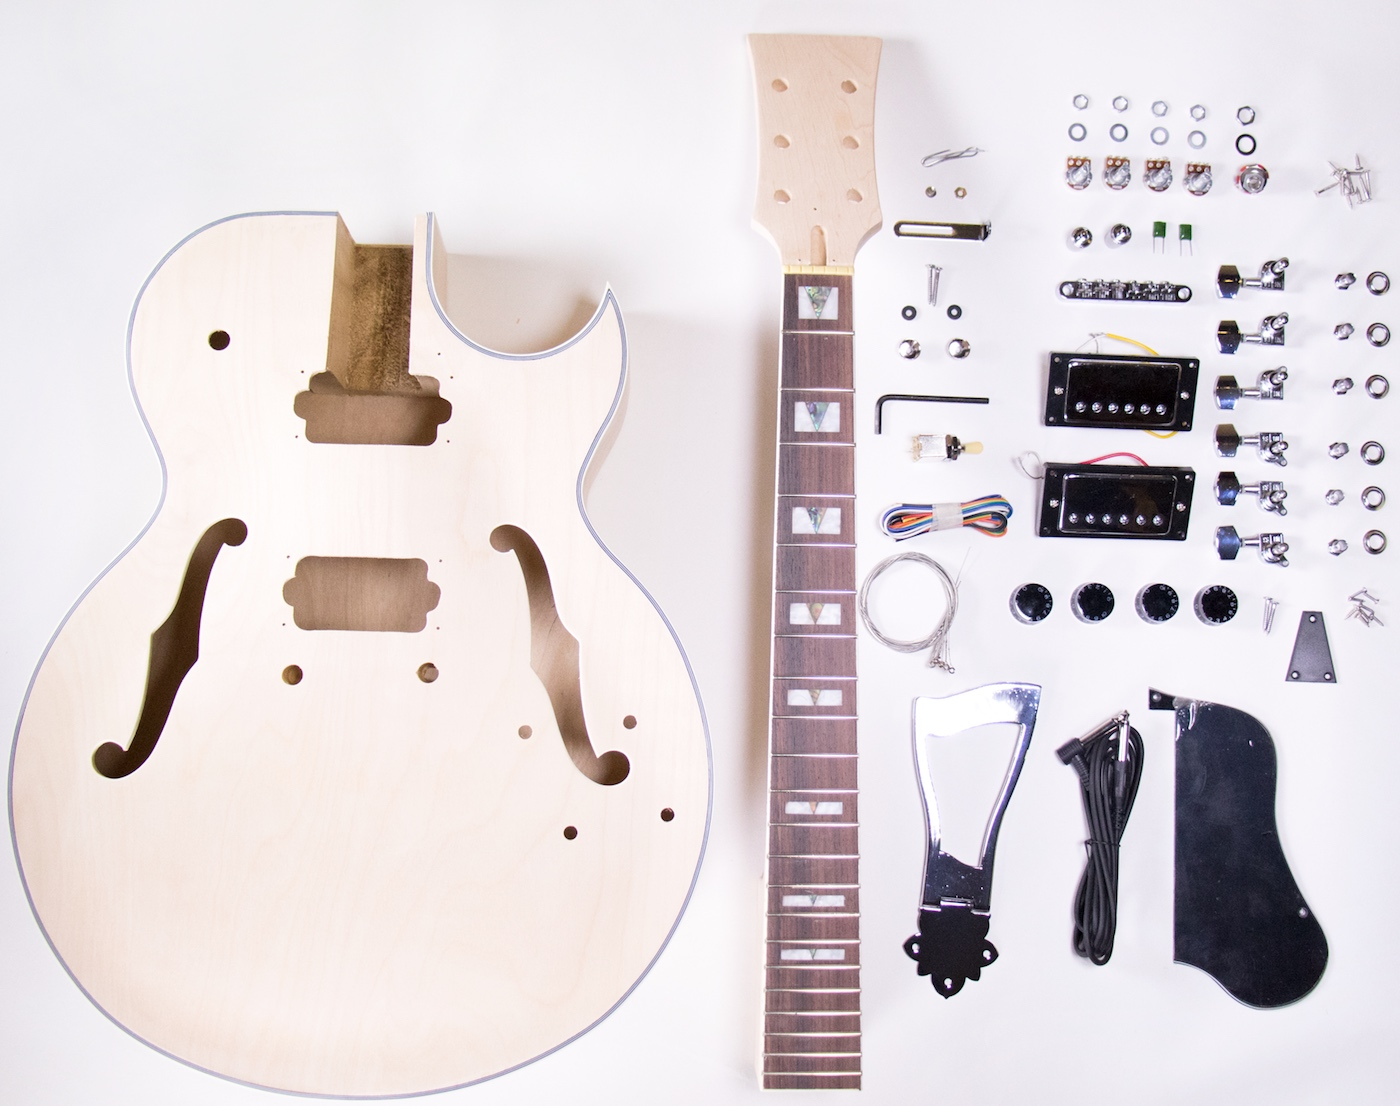 The Best Diy Guitar Kits Electric All Under 250 2018 Gearank On Soldering Loaded Pickguard Fender Stratocaster Forum Thefretwire Kit 175 Jazz Style